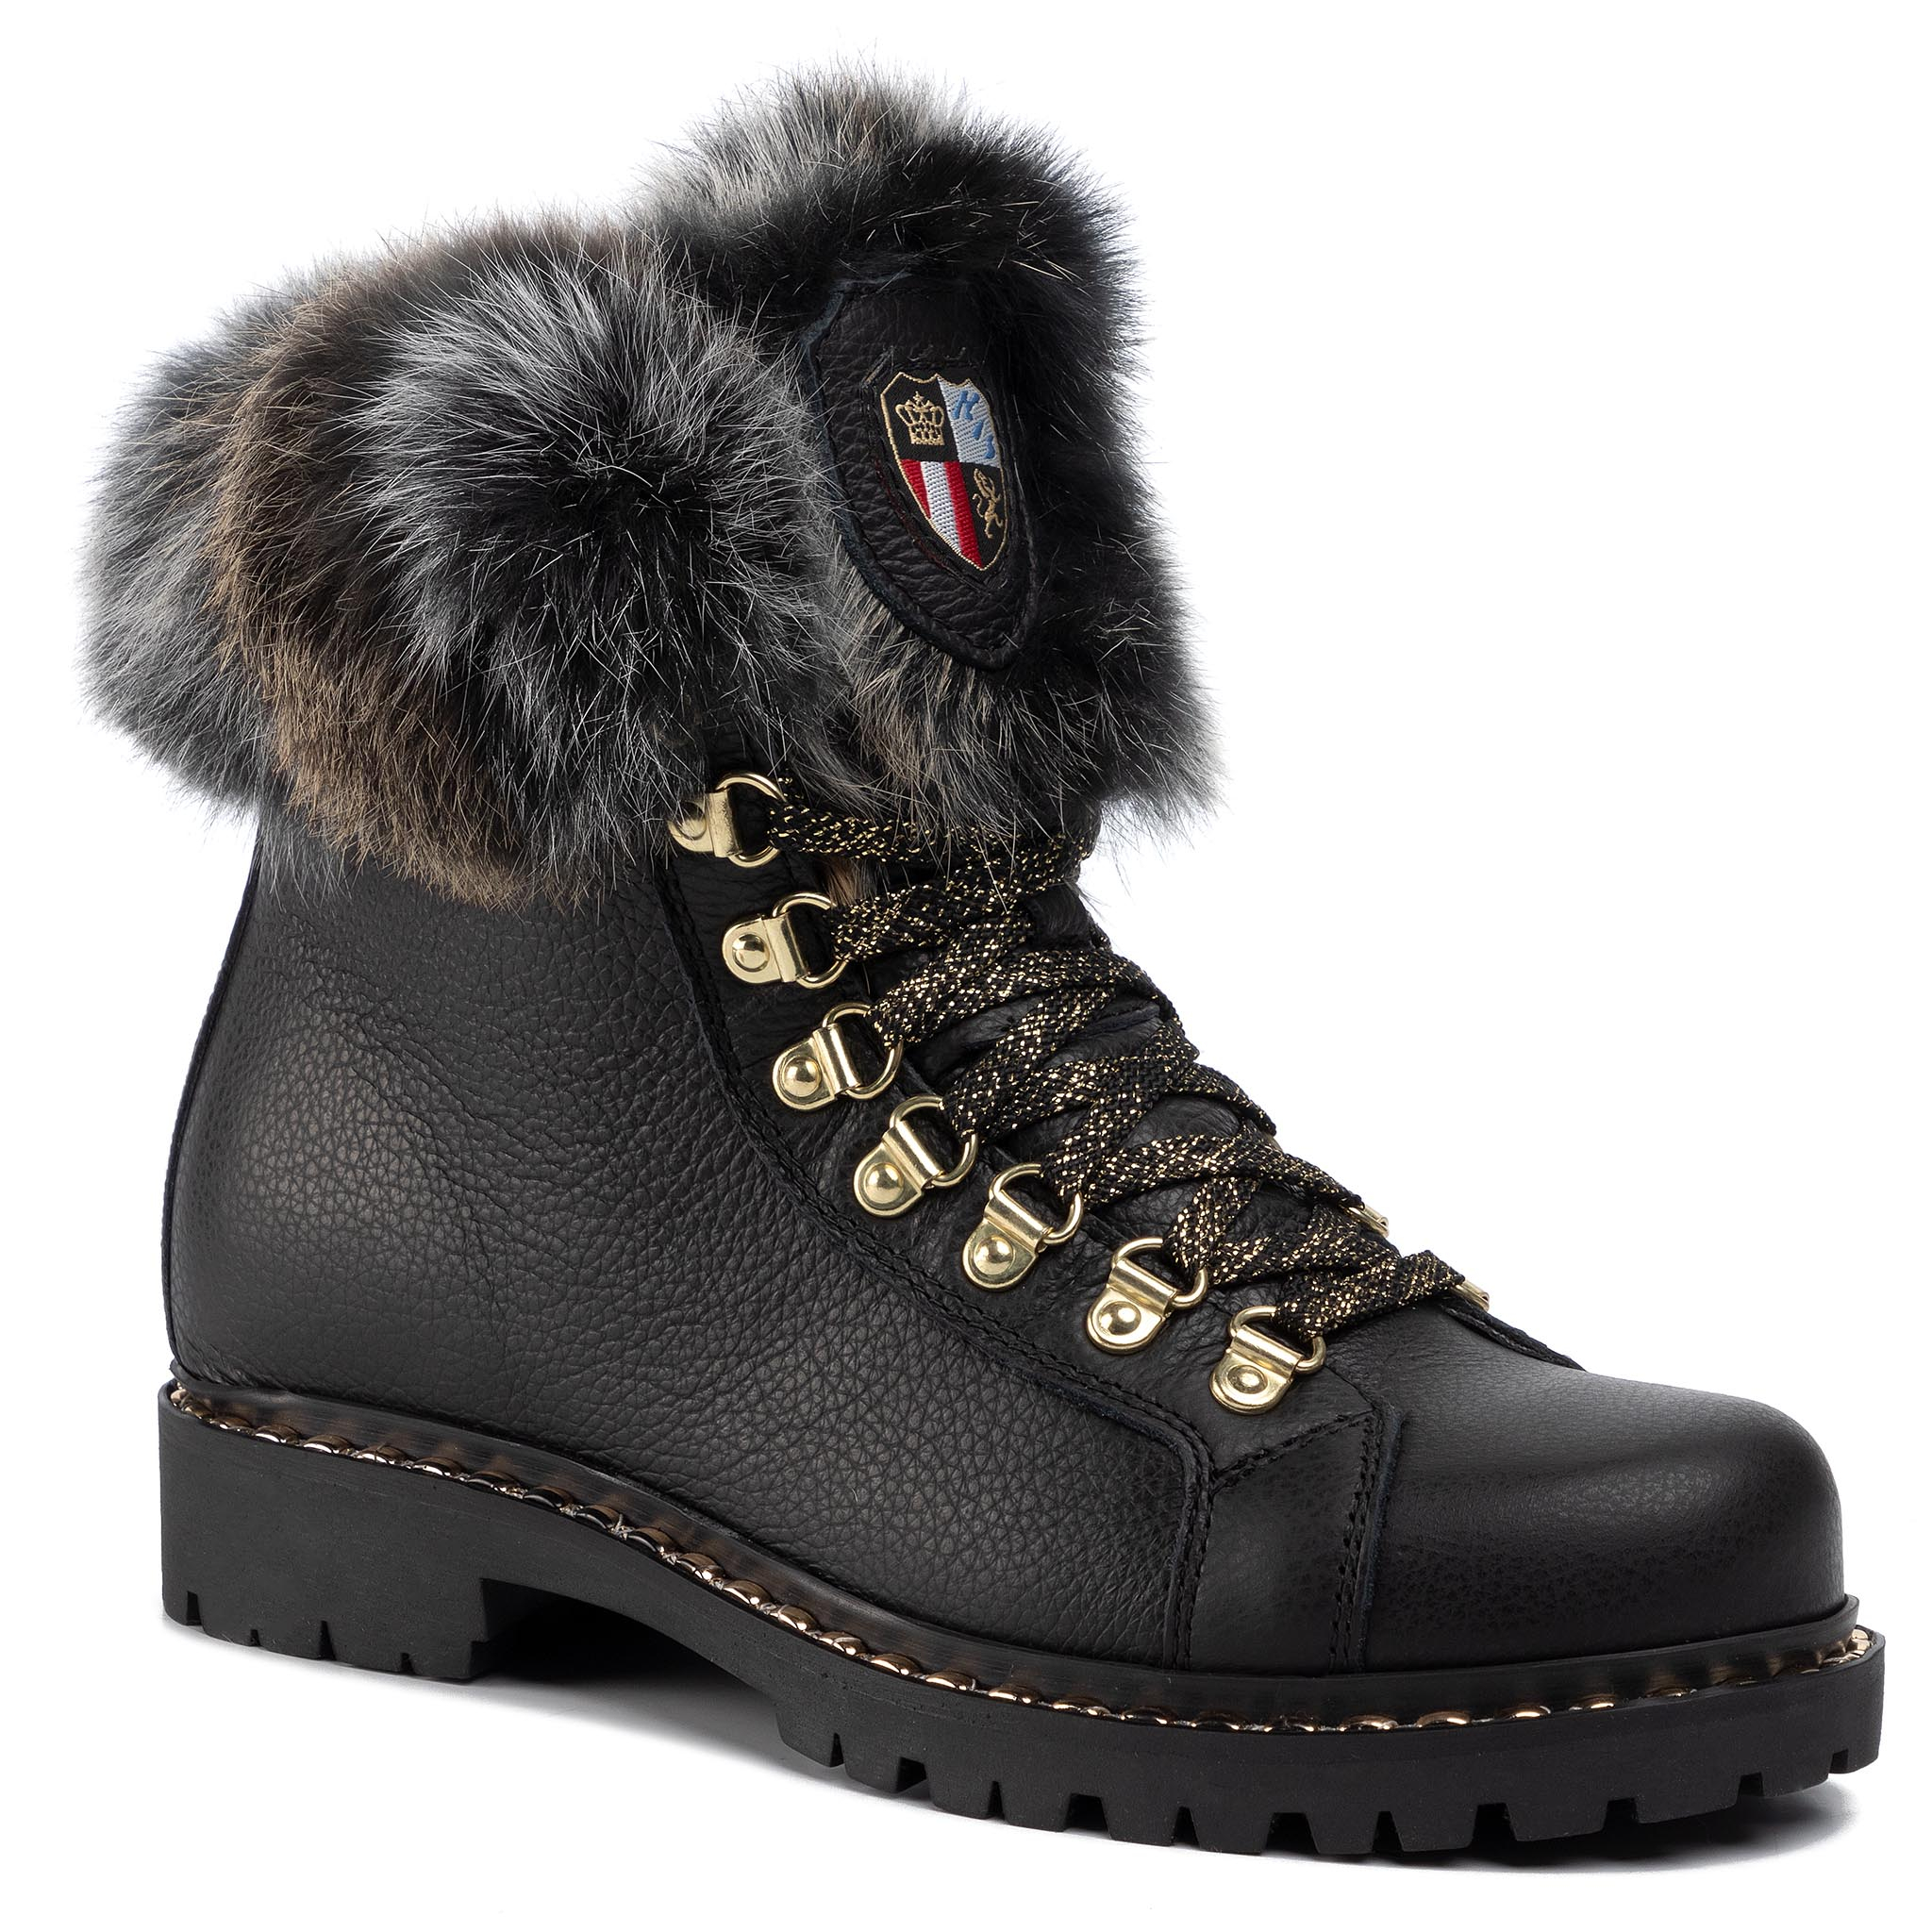 Trappers NEW ITALIA SHOES - 2015435A/12 Black